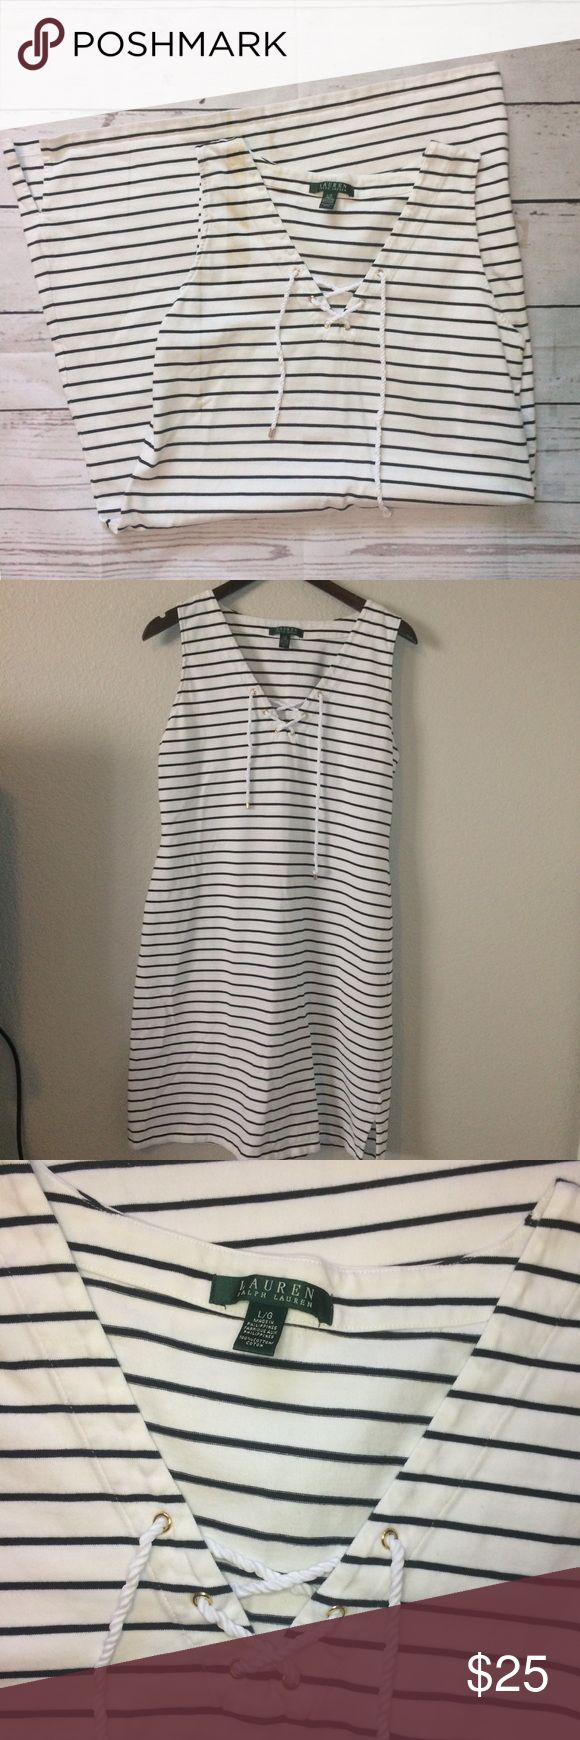 "🆕 Ralph Lauren | Striped Beach Dress! Brand new condition, worn once, Lauren Ralph Lauren striped dress. Size Large. Bust (armpit to armpit) 19"" Length is 37"" Make an Offer! Comment for questions :)    •Fast shipping 📦 •Top rated seller ⭐️⭐️⭐️⭐️⭐️ •Packaged with care 💌 •10% discount on 2+ bundles 🛍 Lauren Ralph Lauren Dresses Midi"